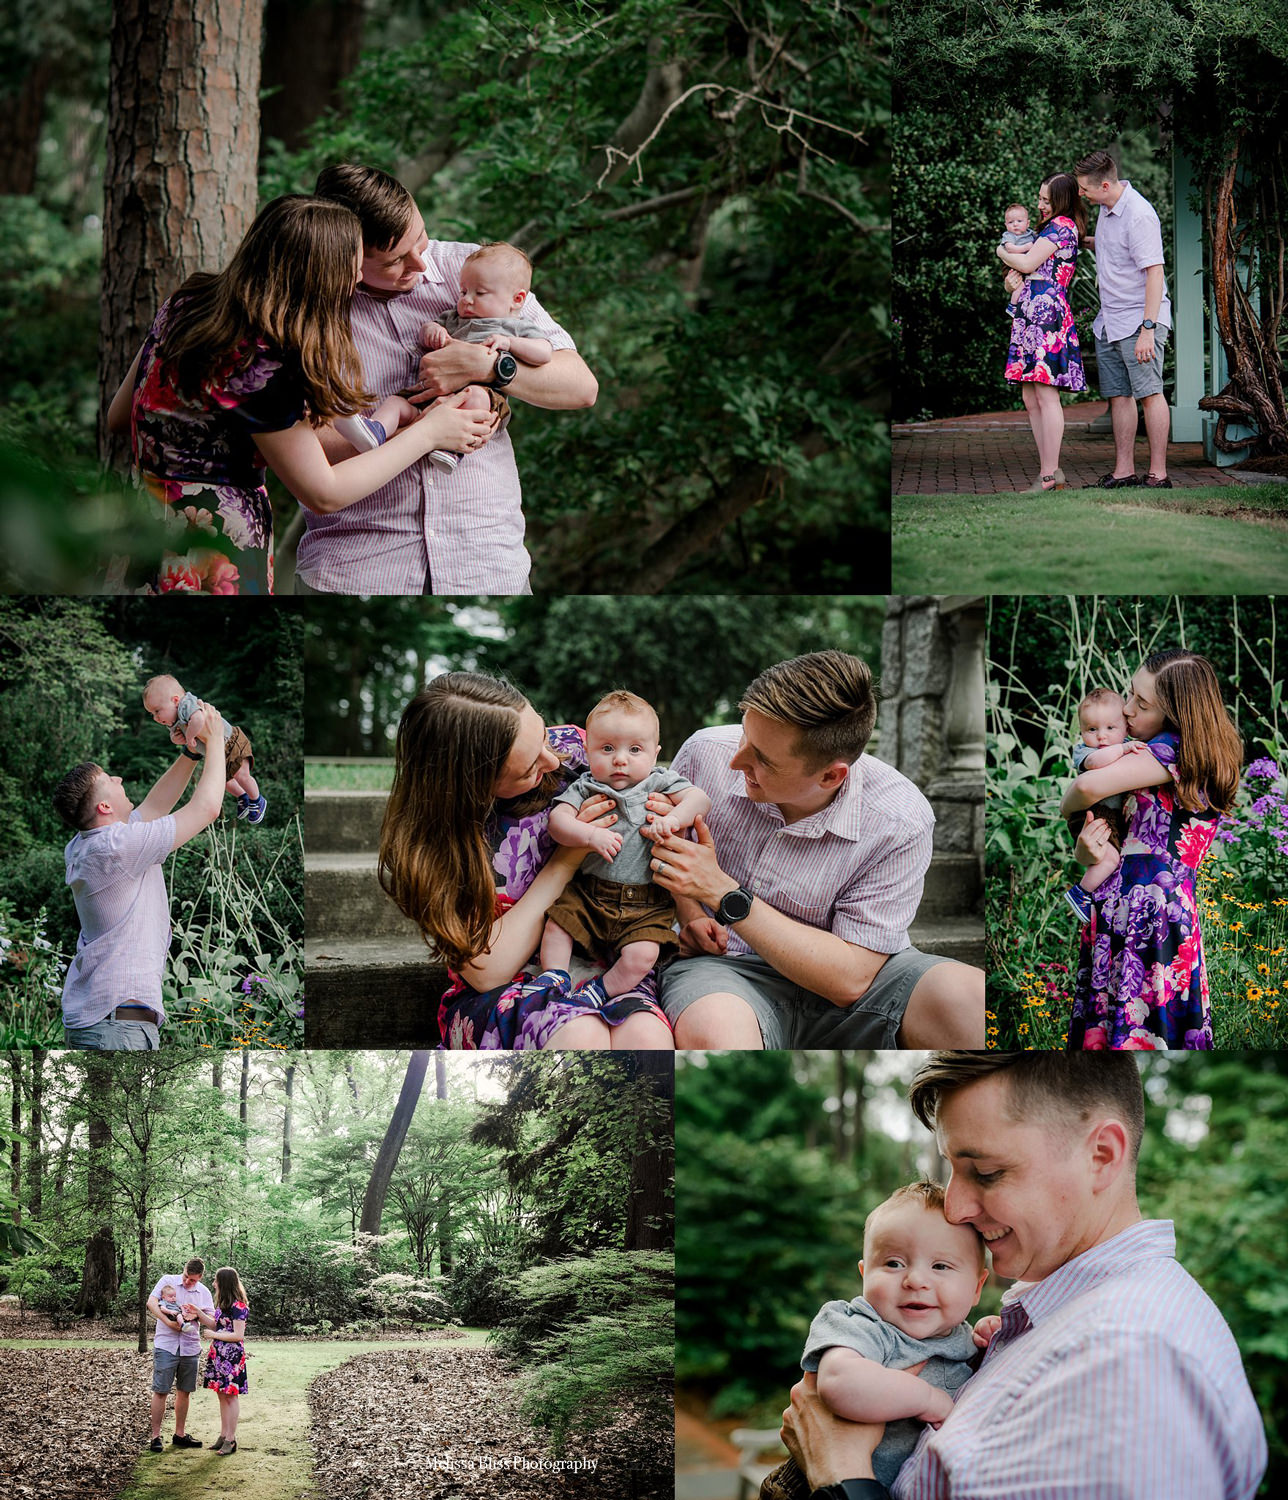 norfolk-botanical-garden-family-photoshoot-norfolk-photographer-melissa-bliss-photography.jpg